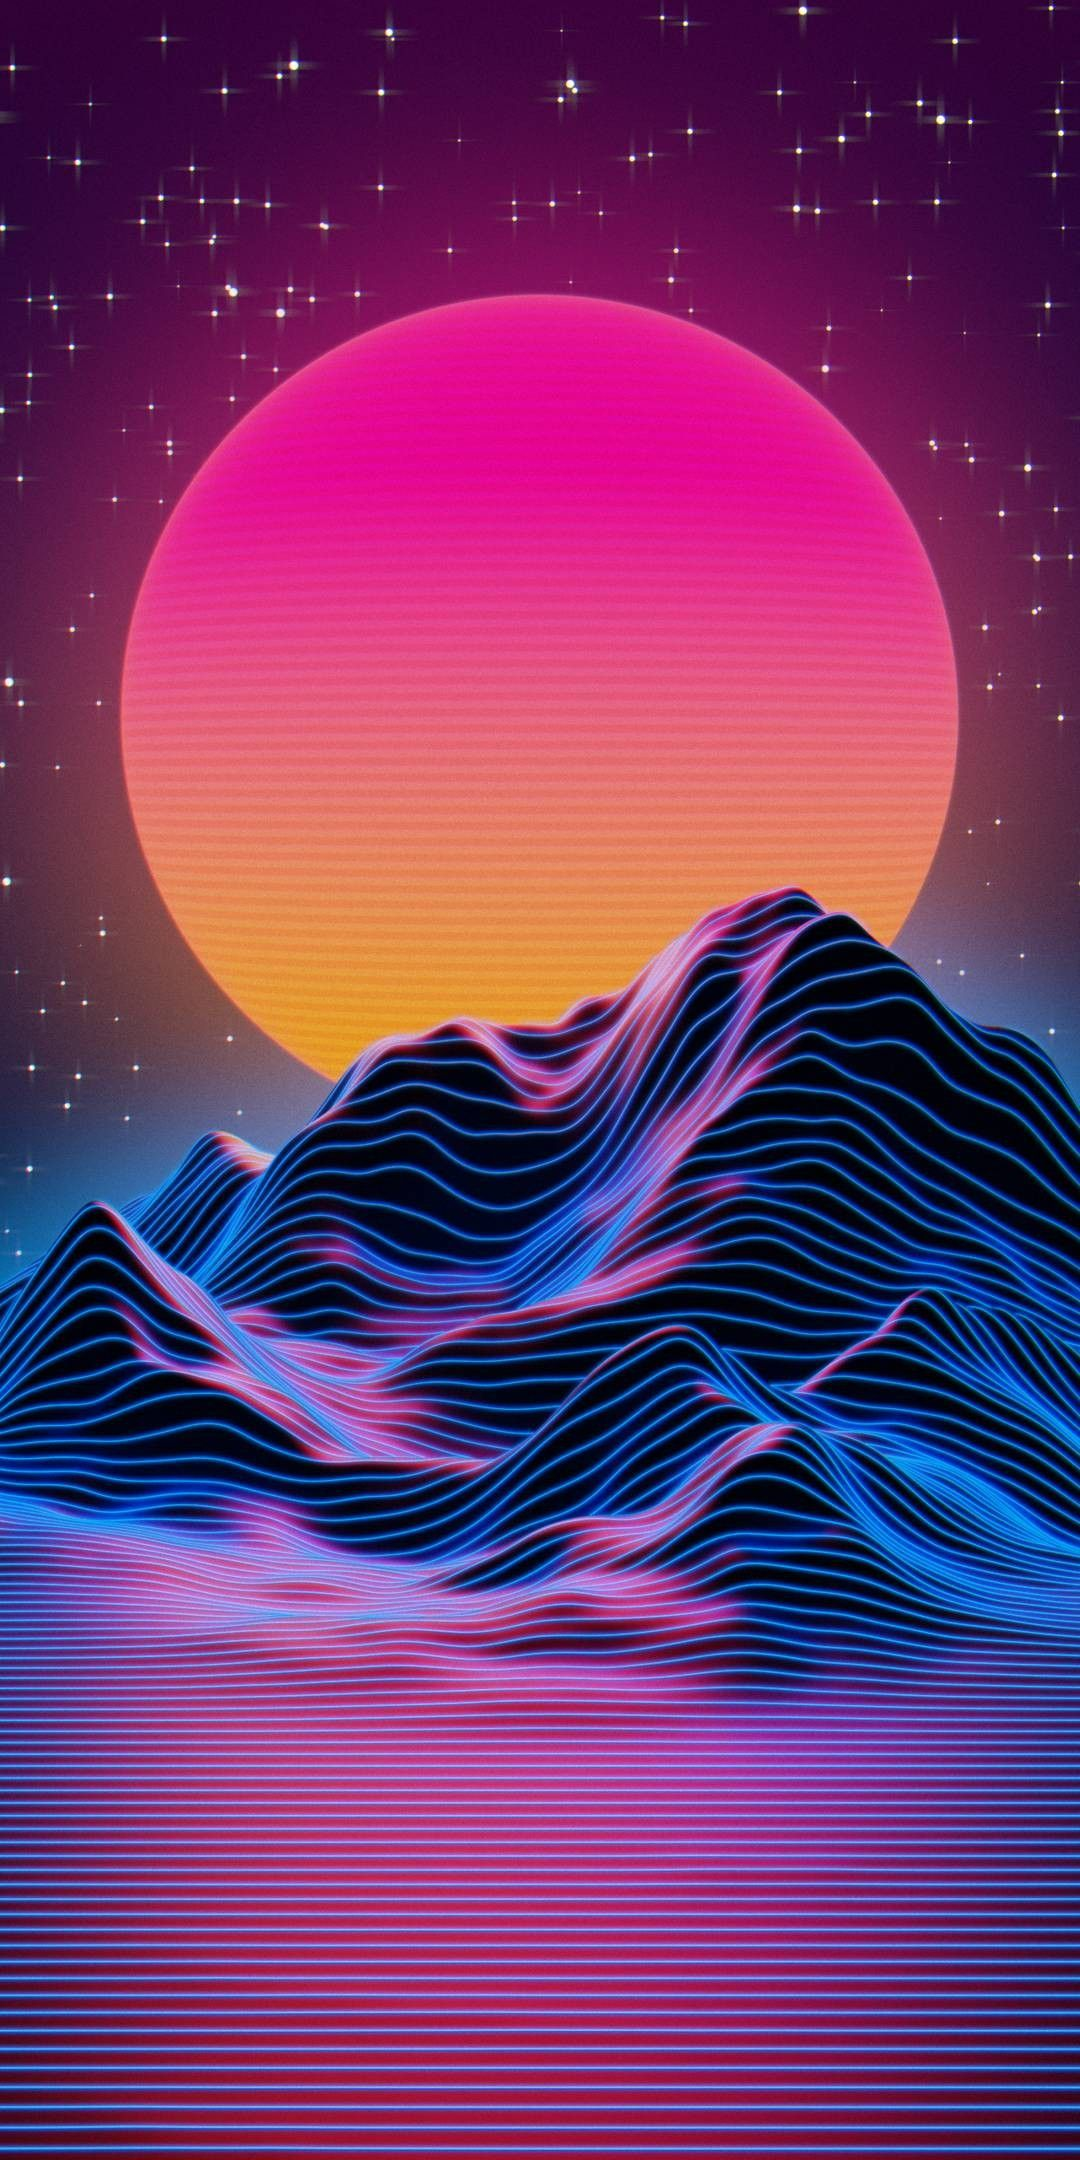 Pin By Lucas Oliver On Just Vaporwave Wallpaper Synthwave Art Phone Wallpaper